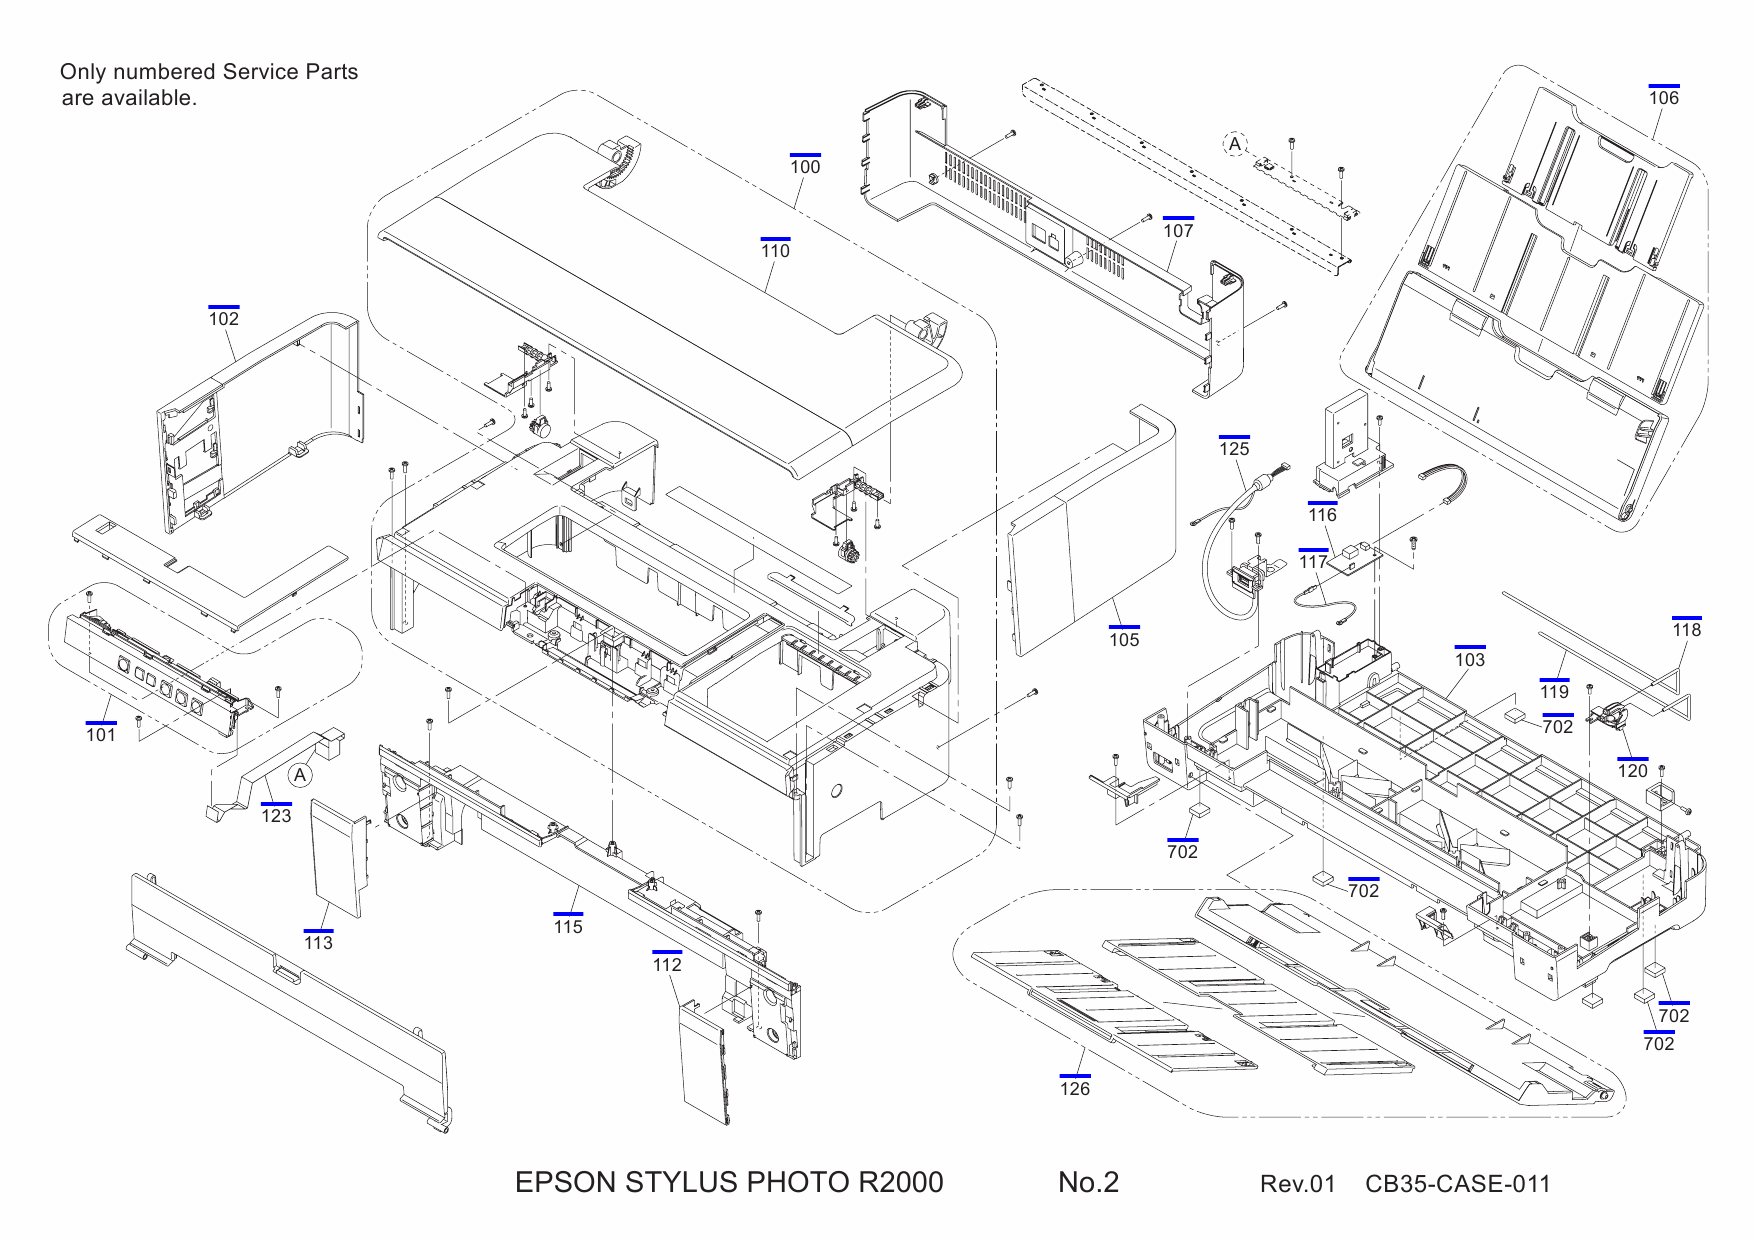 EPSON StylusPhoto R2000 Parts Manual